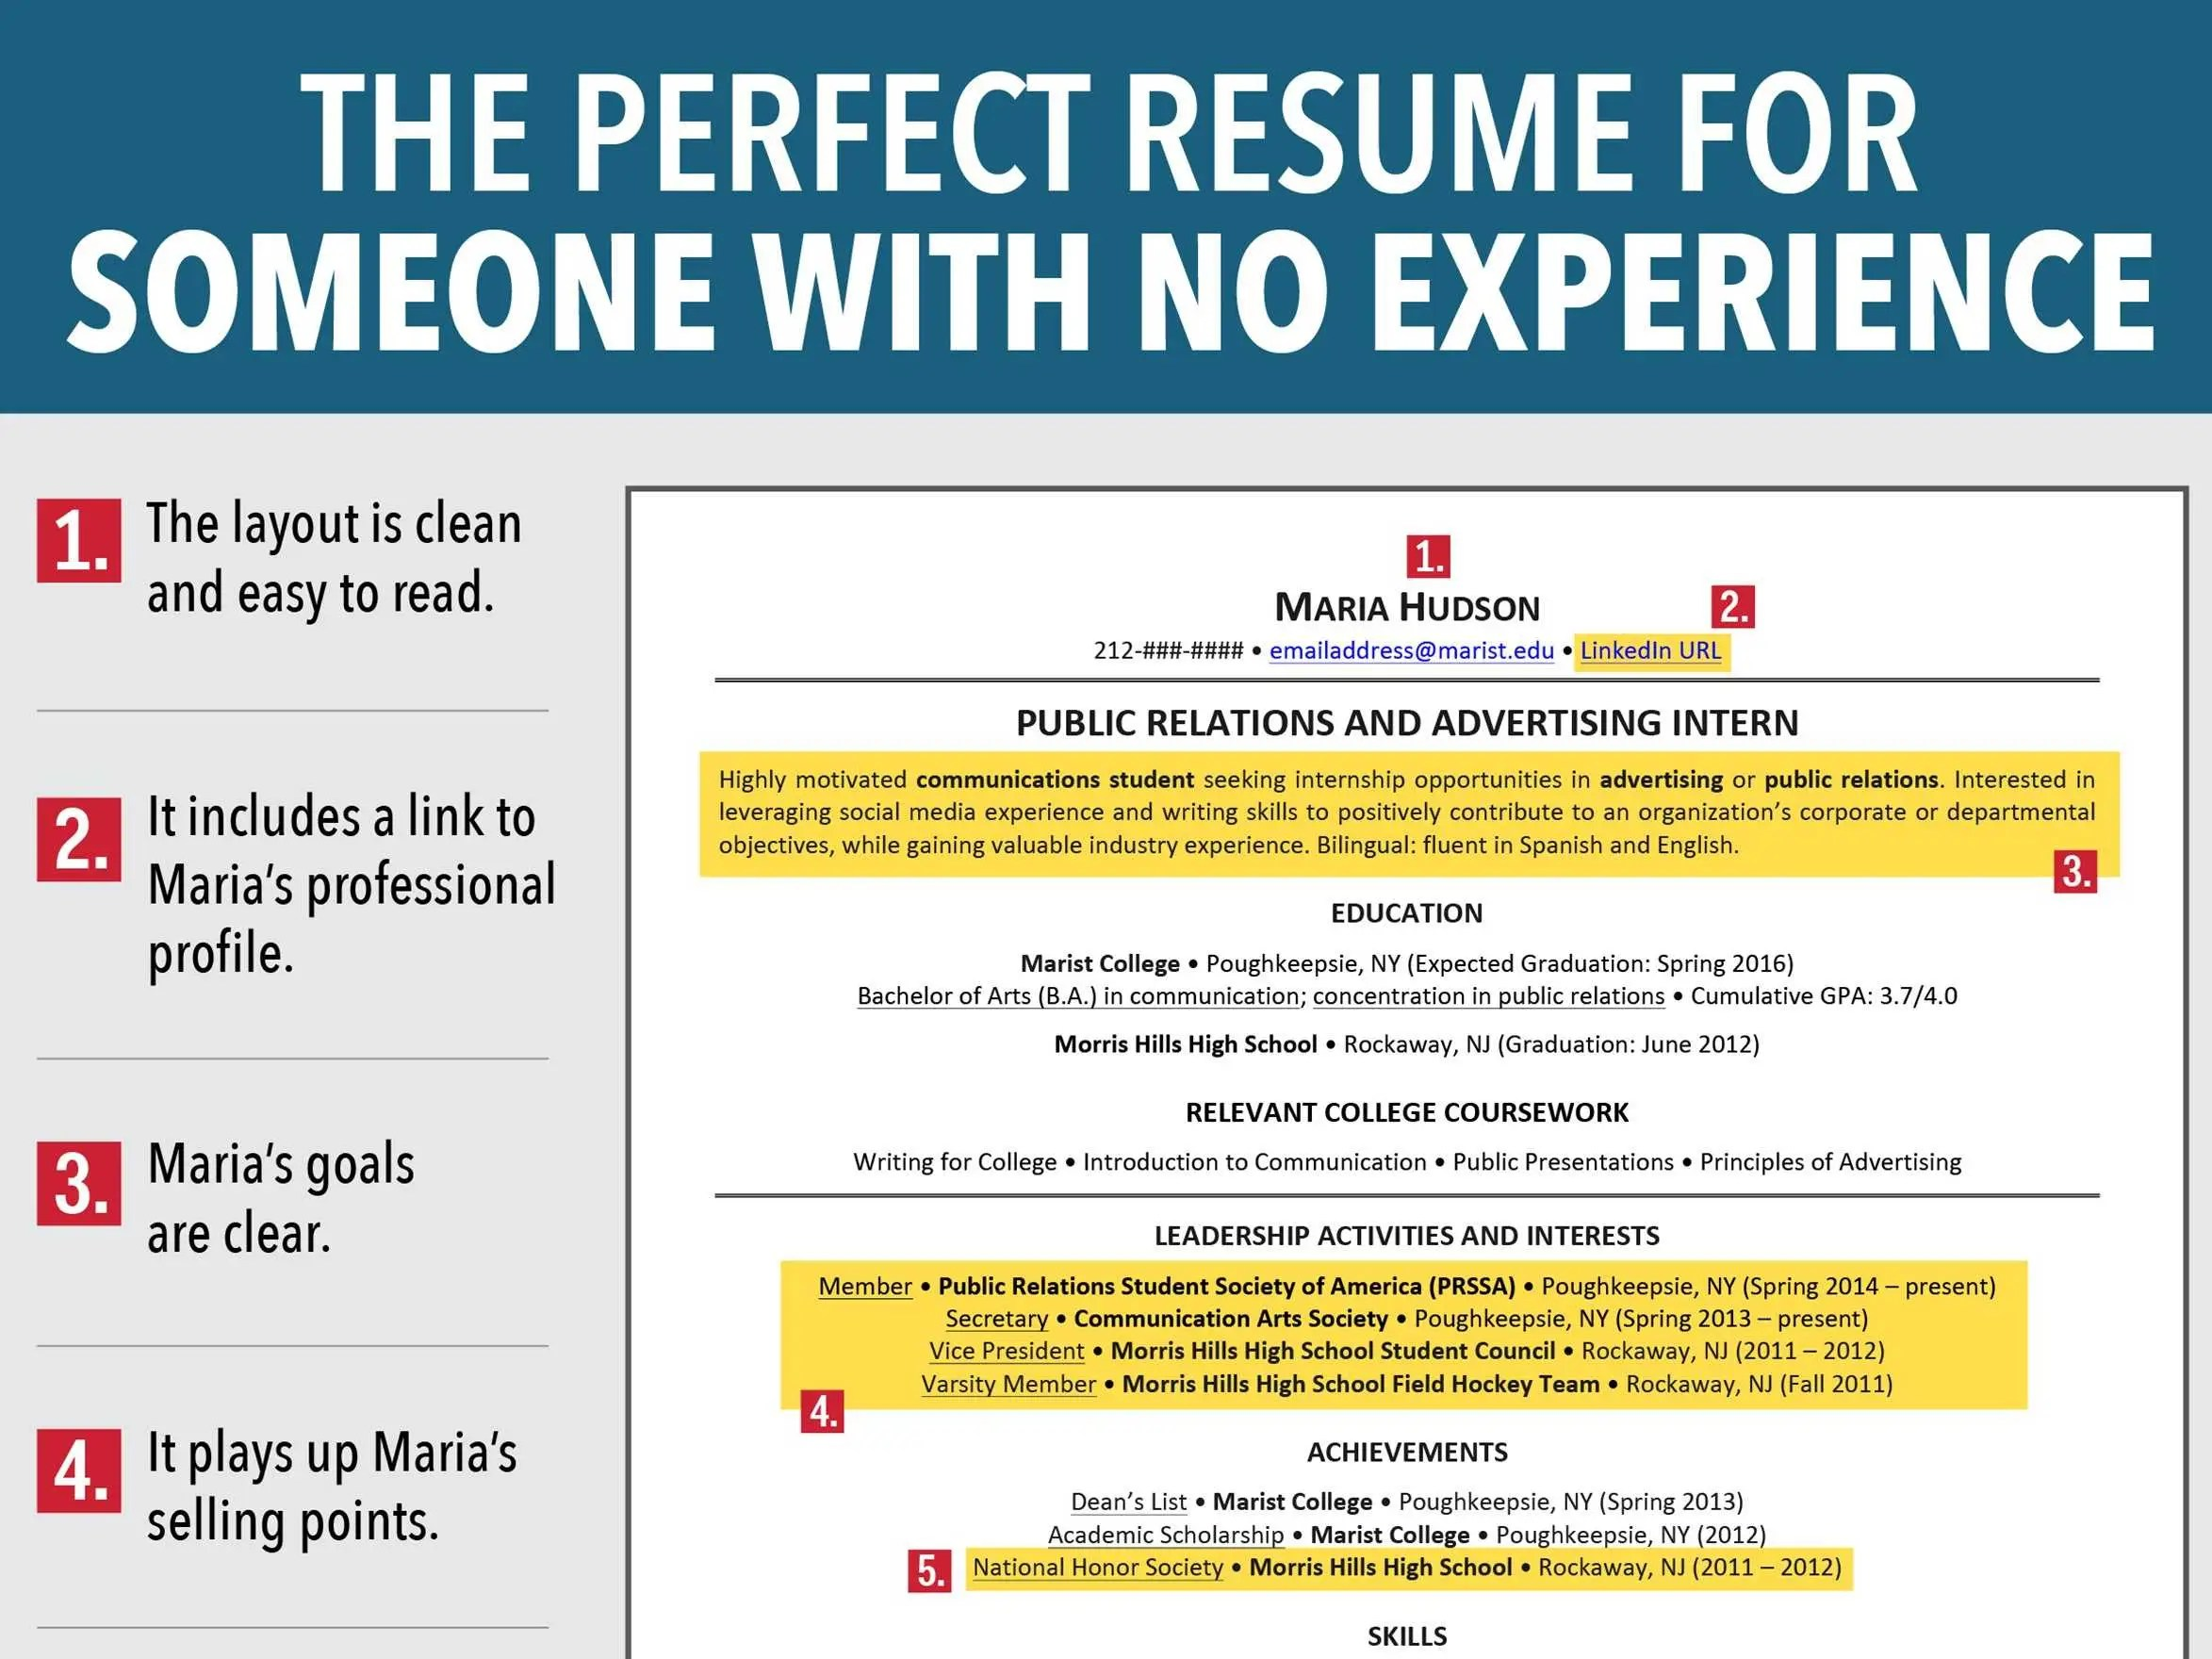 How To Write A Resume For A First Job Resume For Job Seeker With No Experience Business Insider